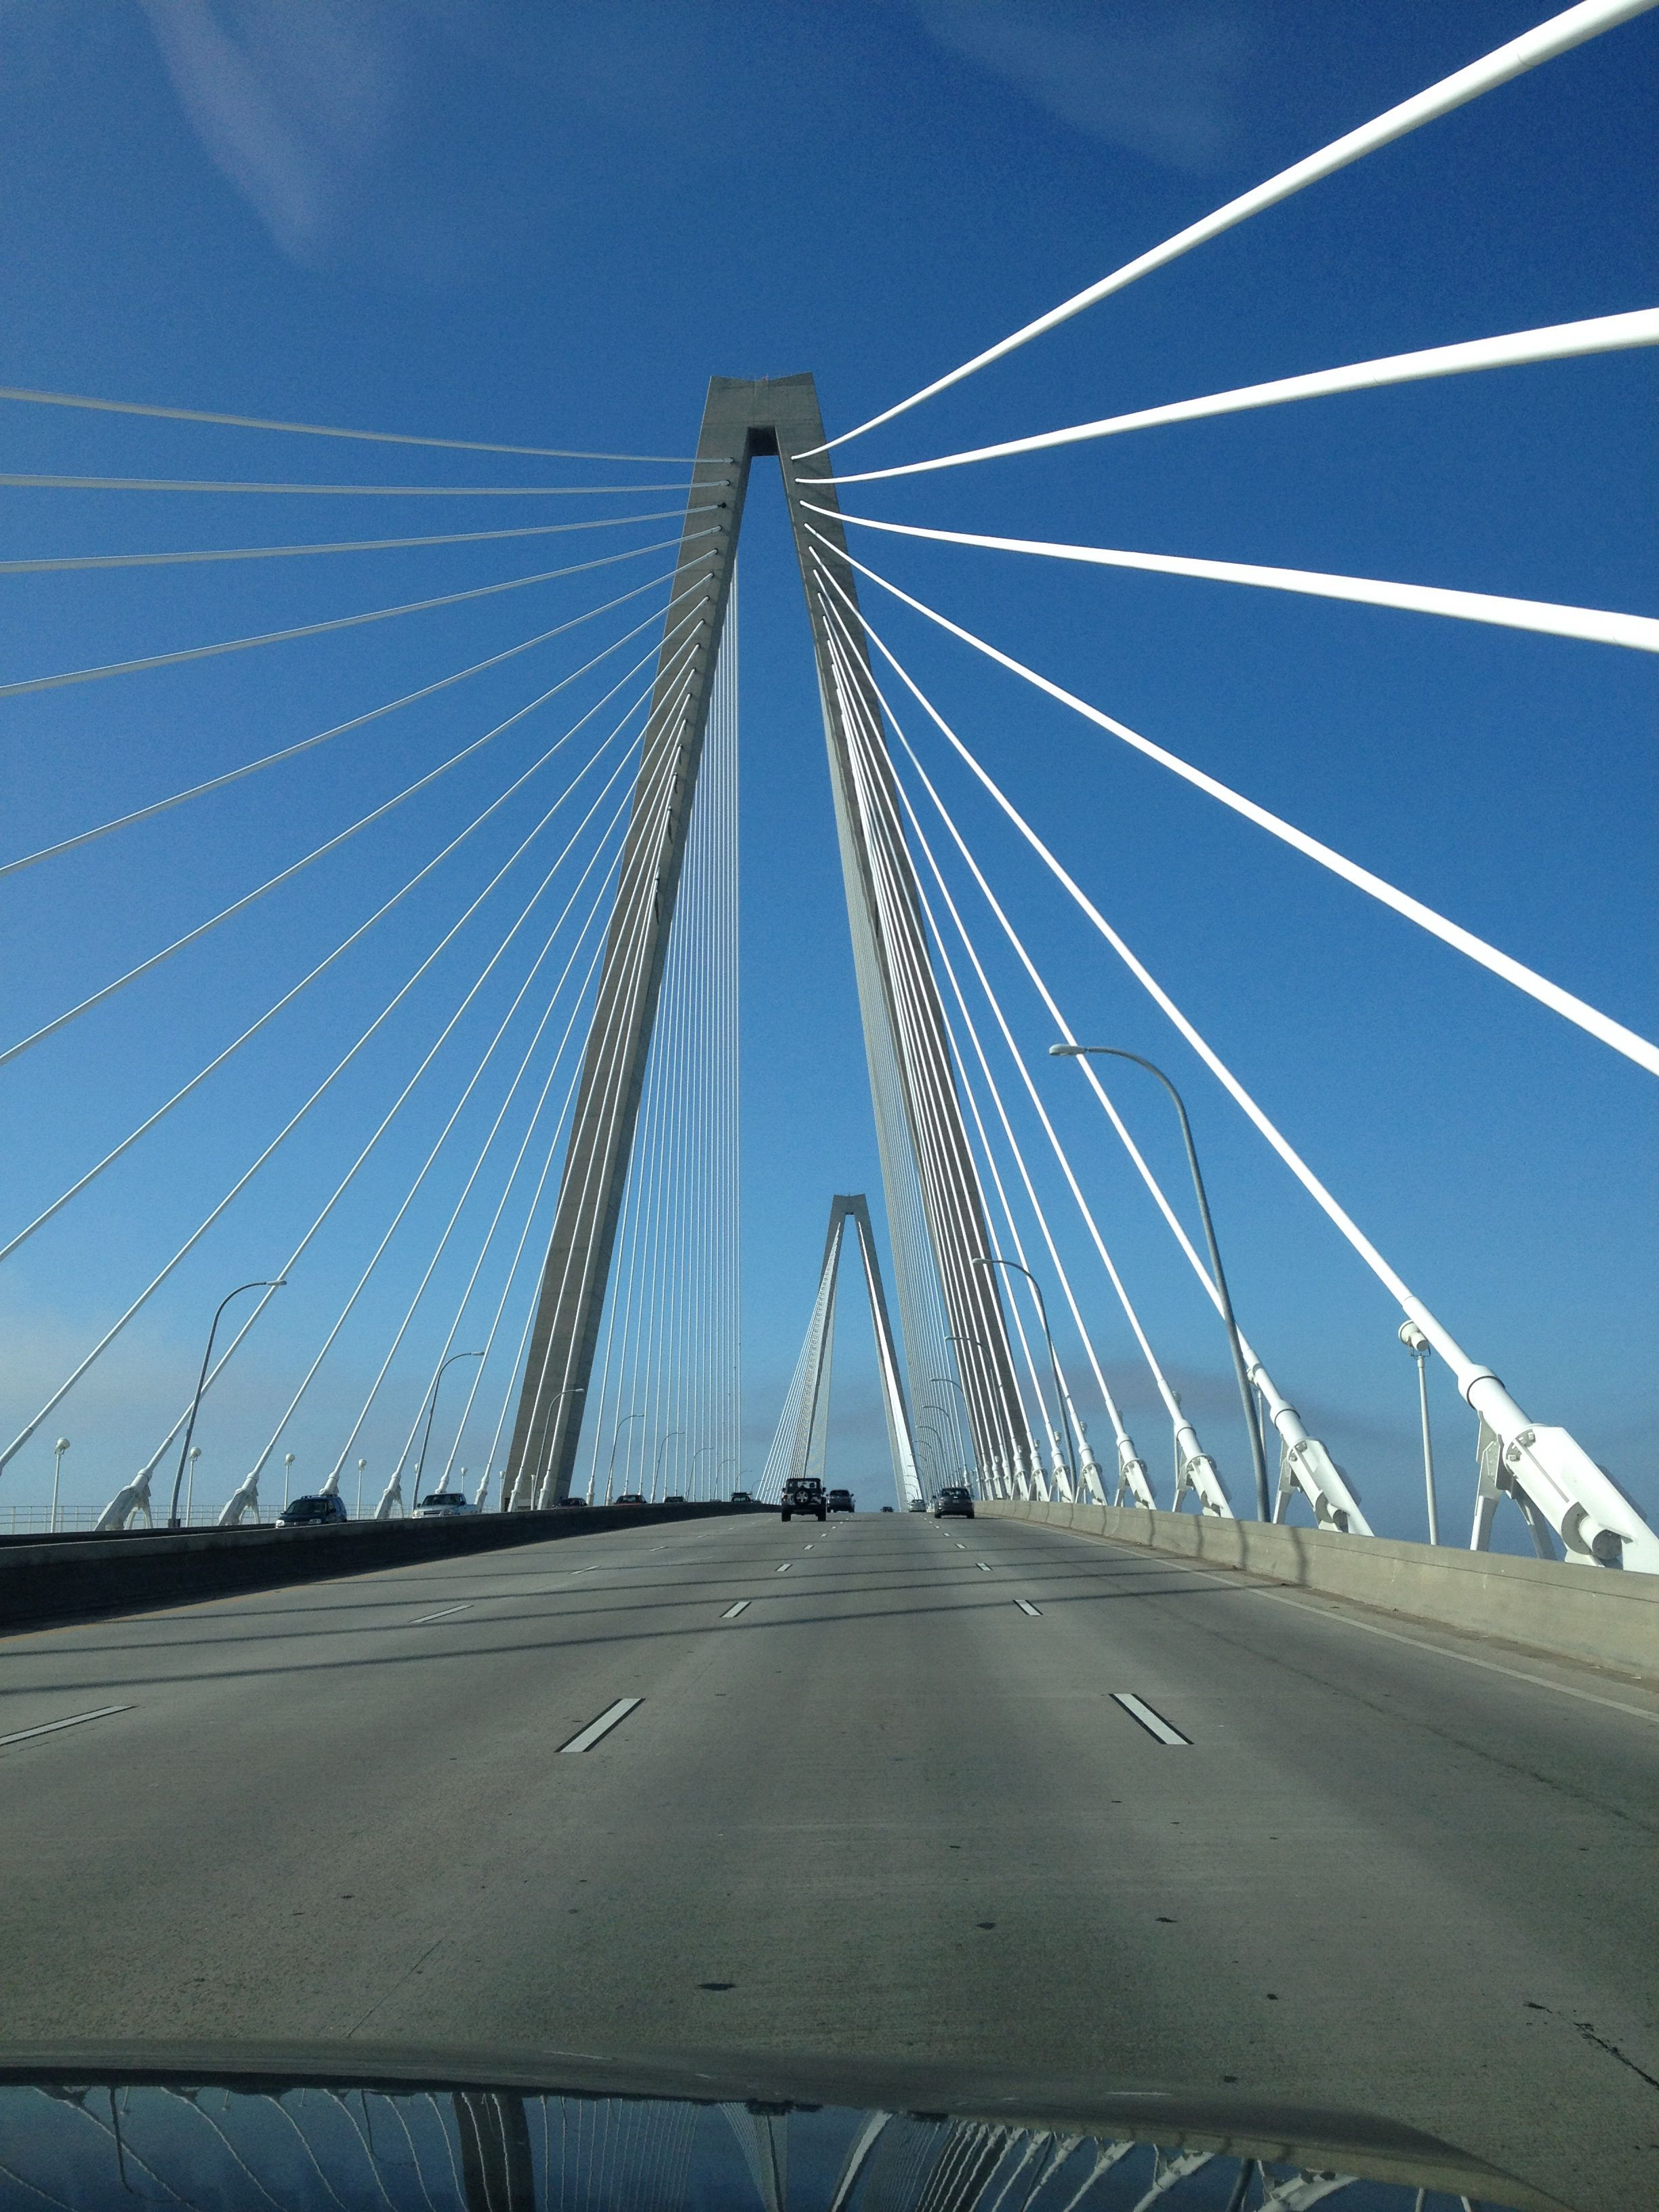 Bridge between Mt. Pleasant and city of Charleston SC